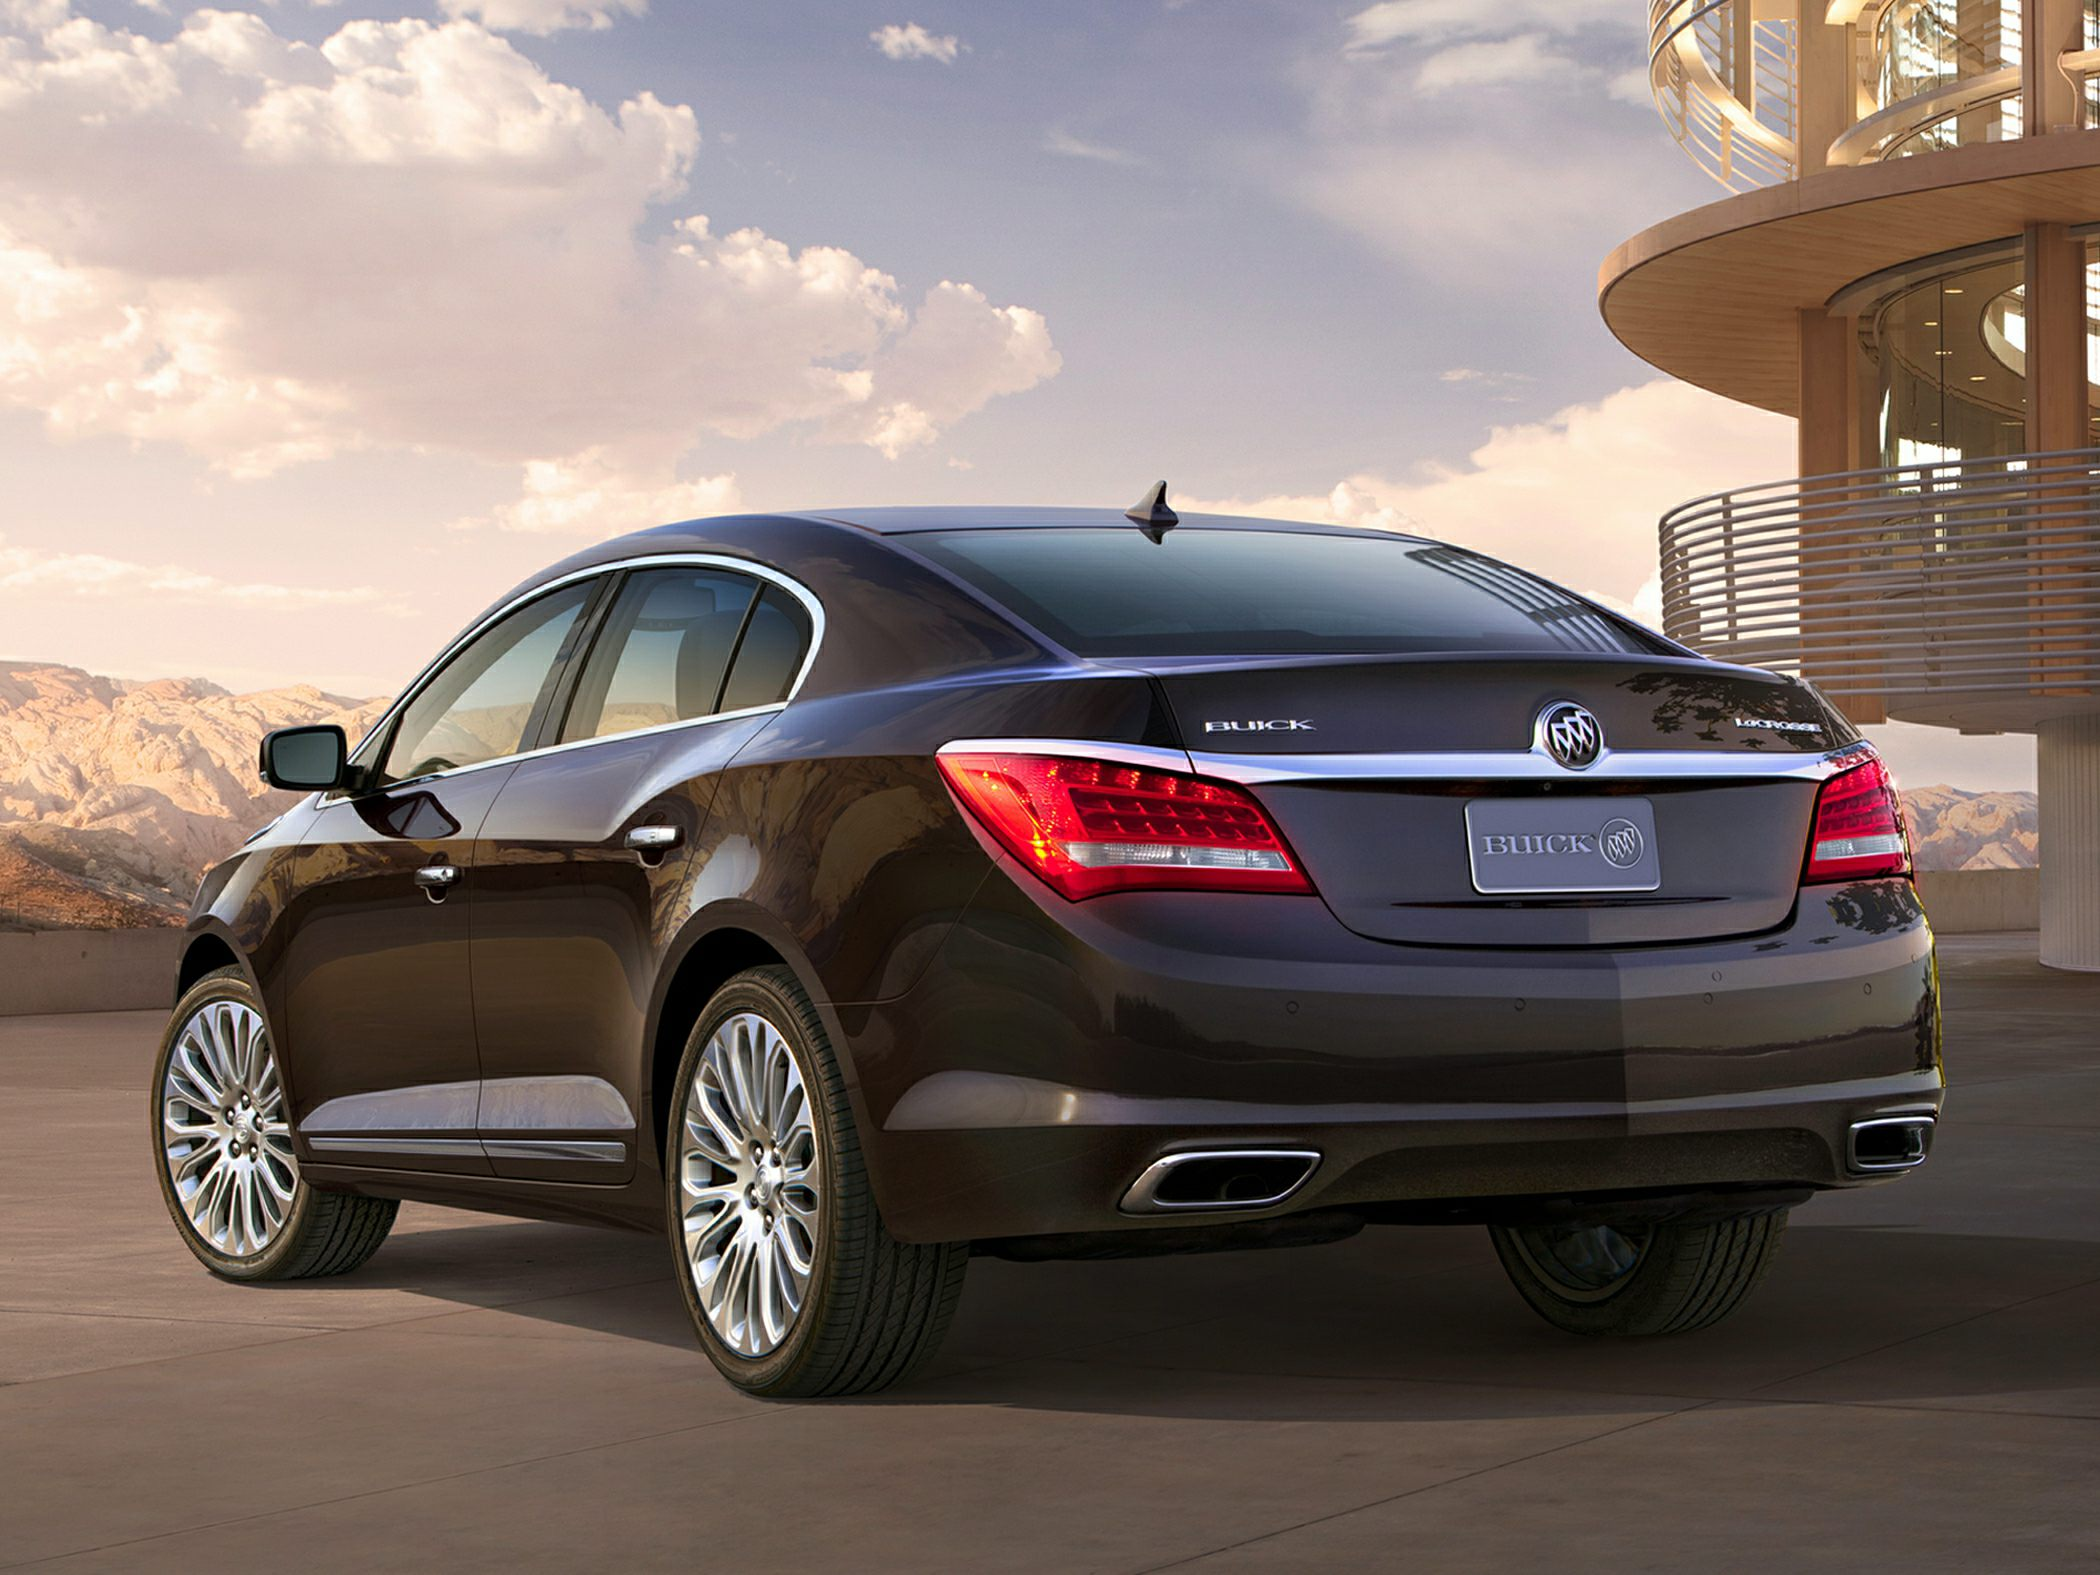 2014 Buick LaCrosse Glam2